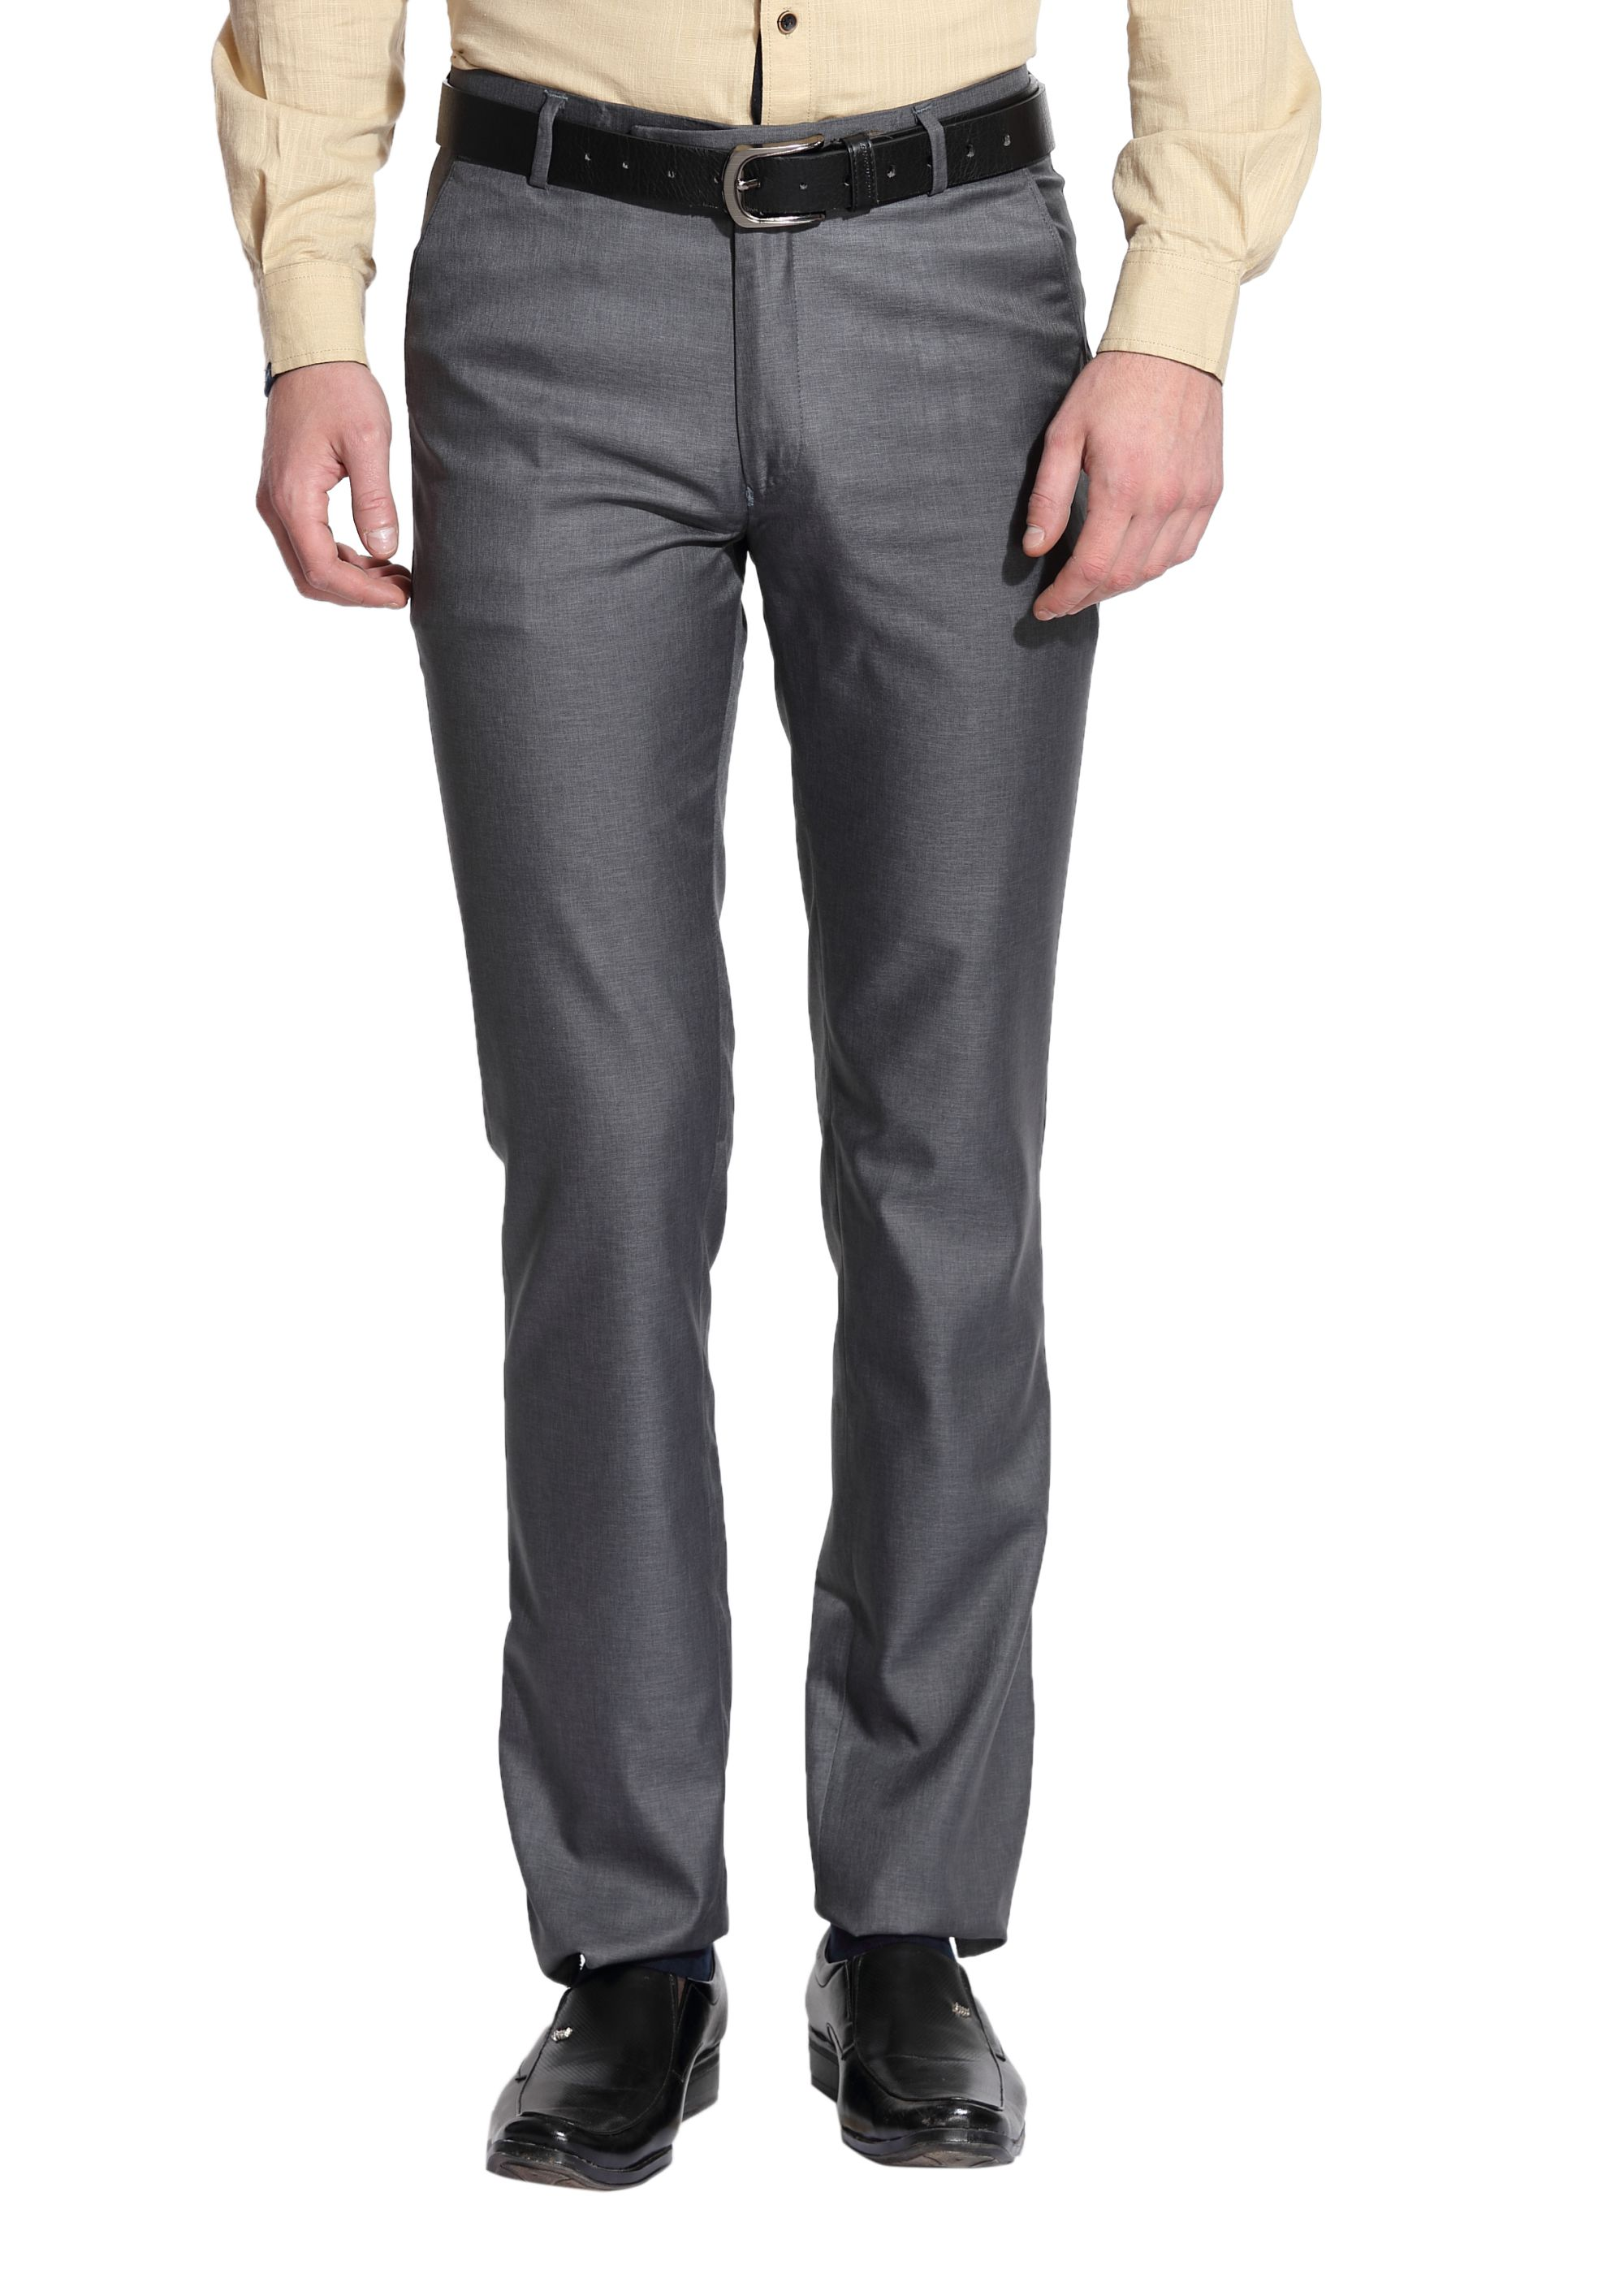 Le Bison Grey Slim -Fit Flat Trousers